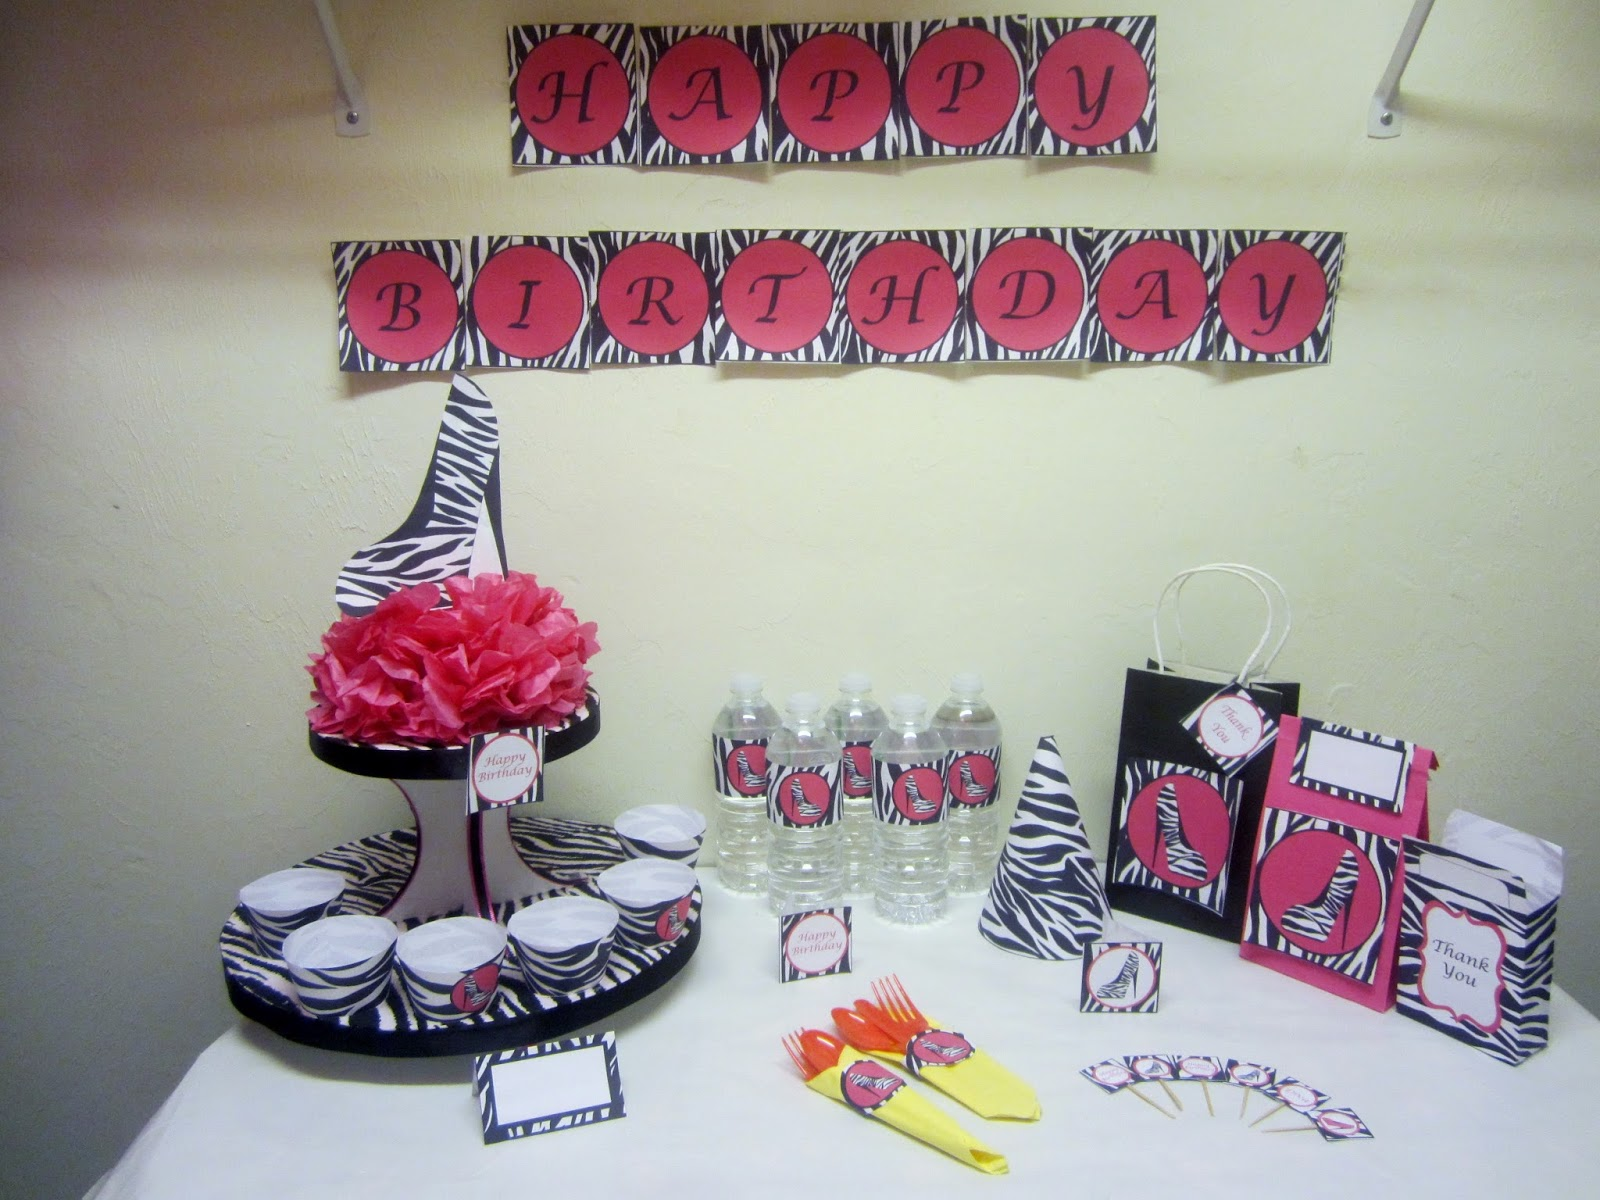 Diy party decorations sweet 16 party ideas diva hot for Home sweet home party decorations